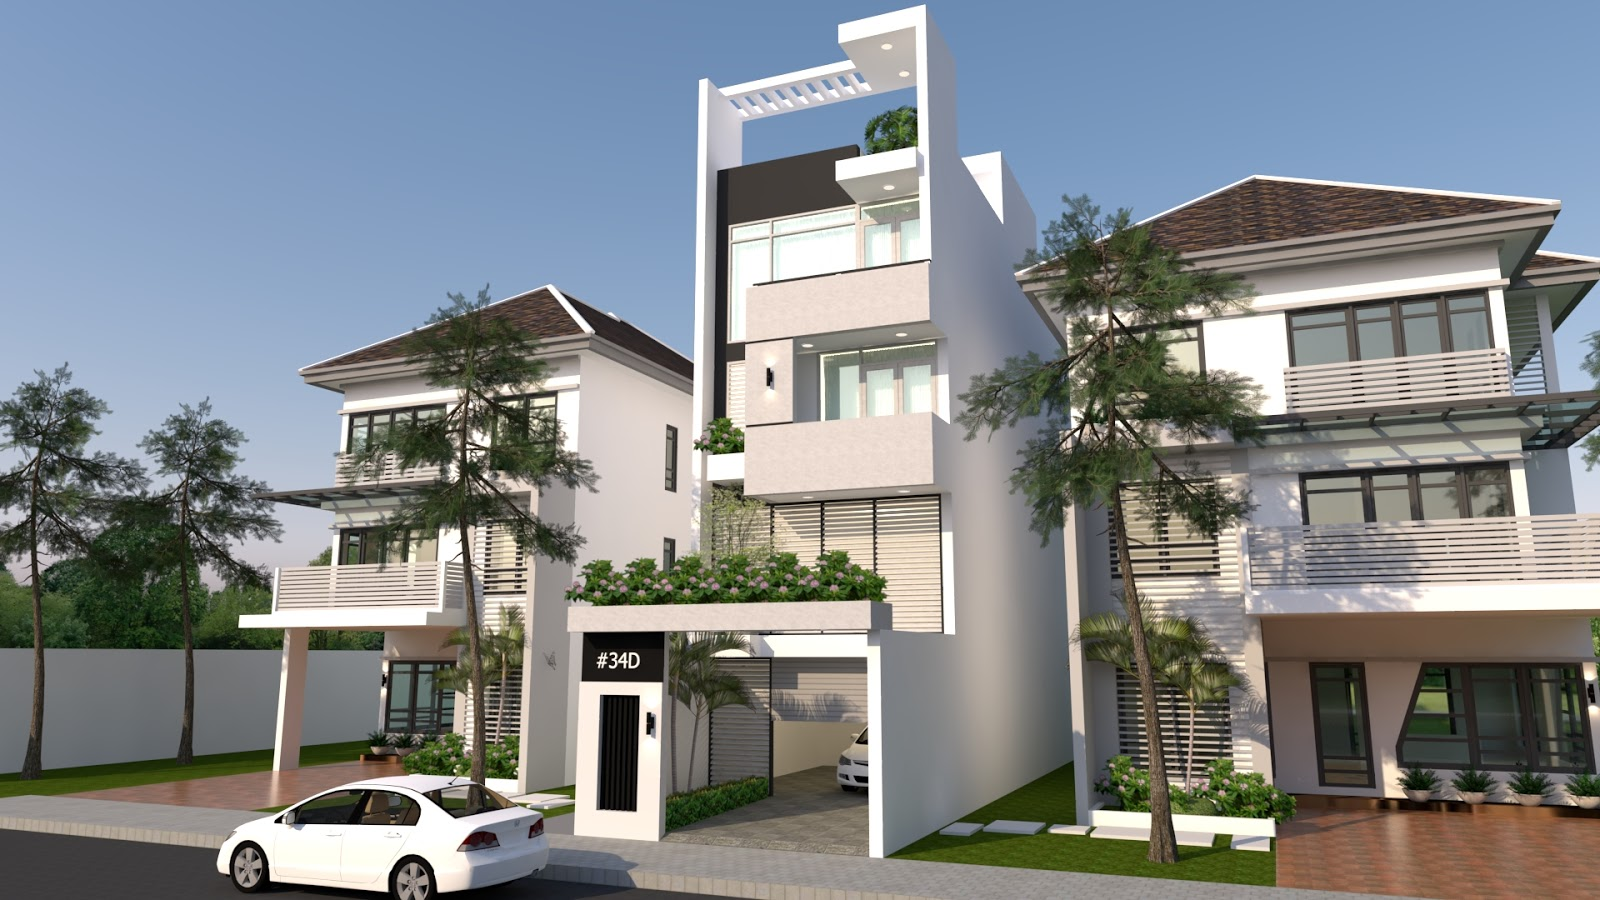 Sketchup 4 story house elevation front size 5m samphoas for 4 story house